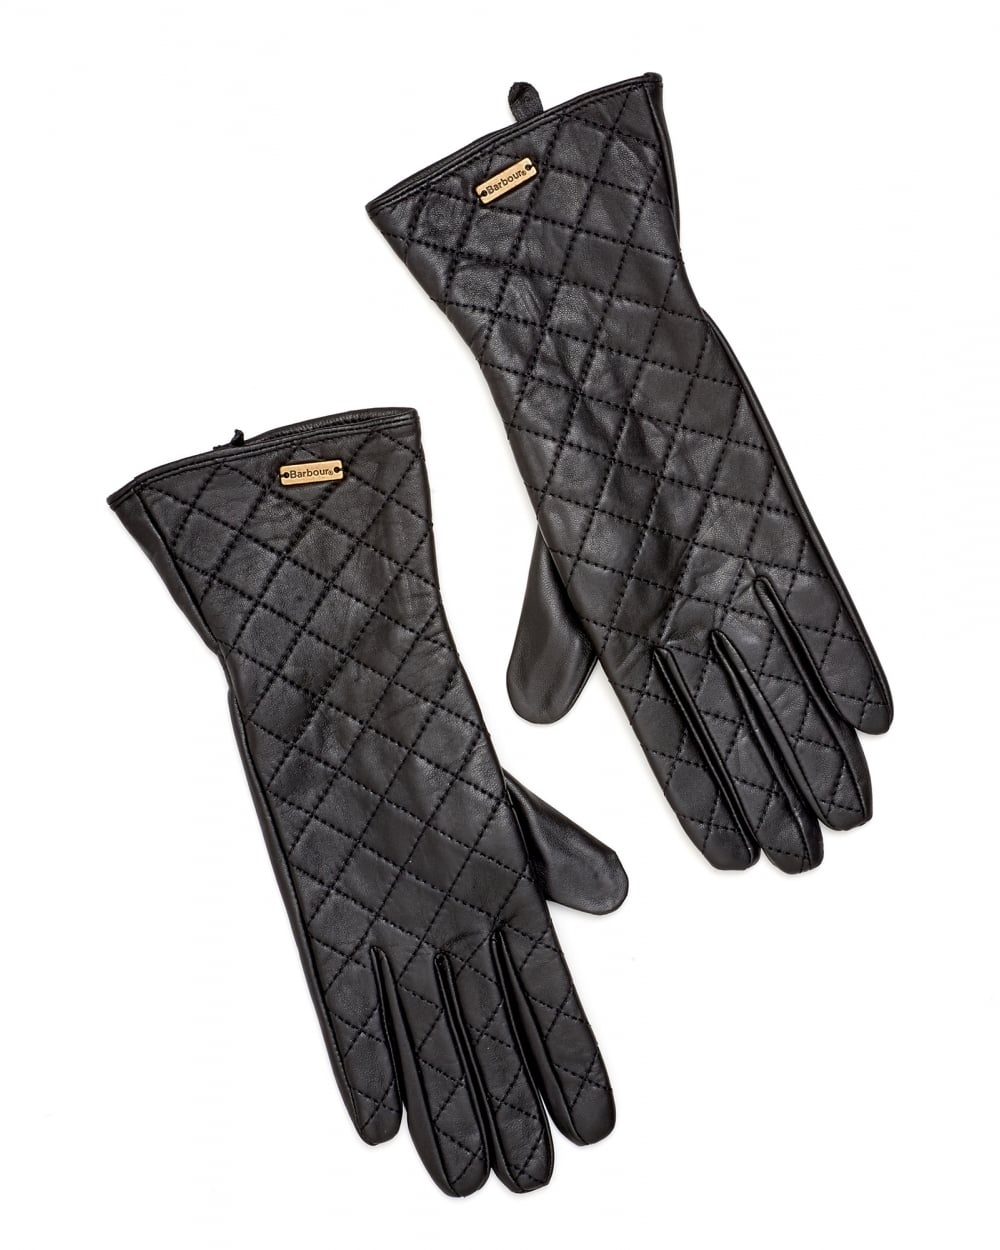 Barbour Lifestyle Womens Gauntlet Quilted Leather Gloves : barbour quilted gloves - Adamdwight.com